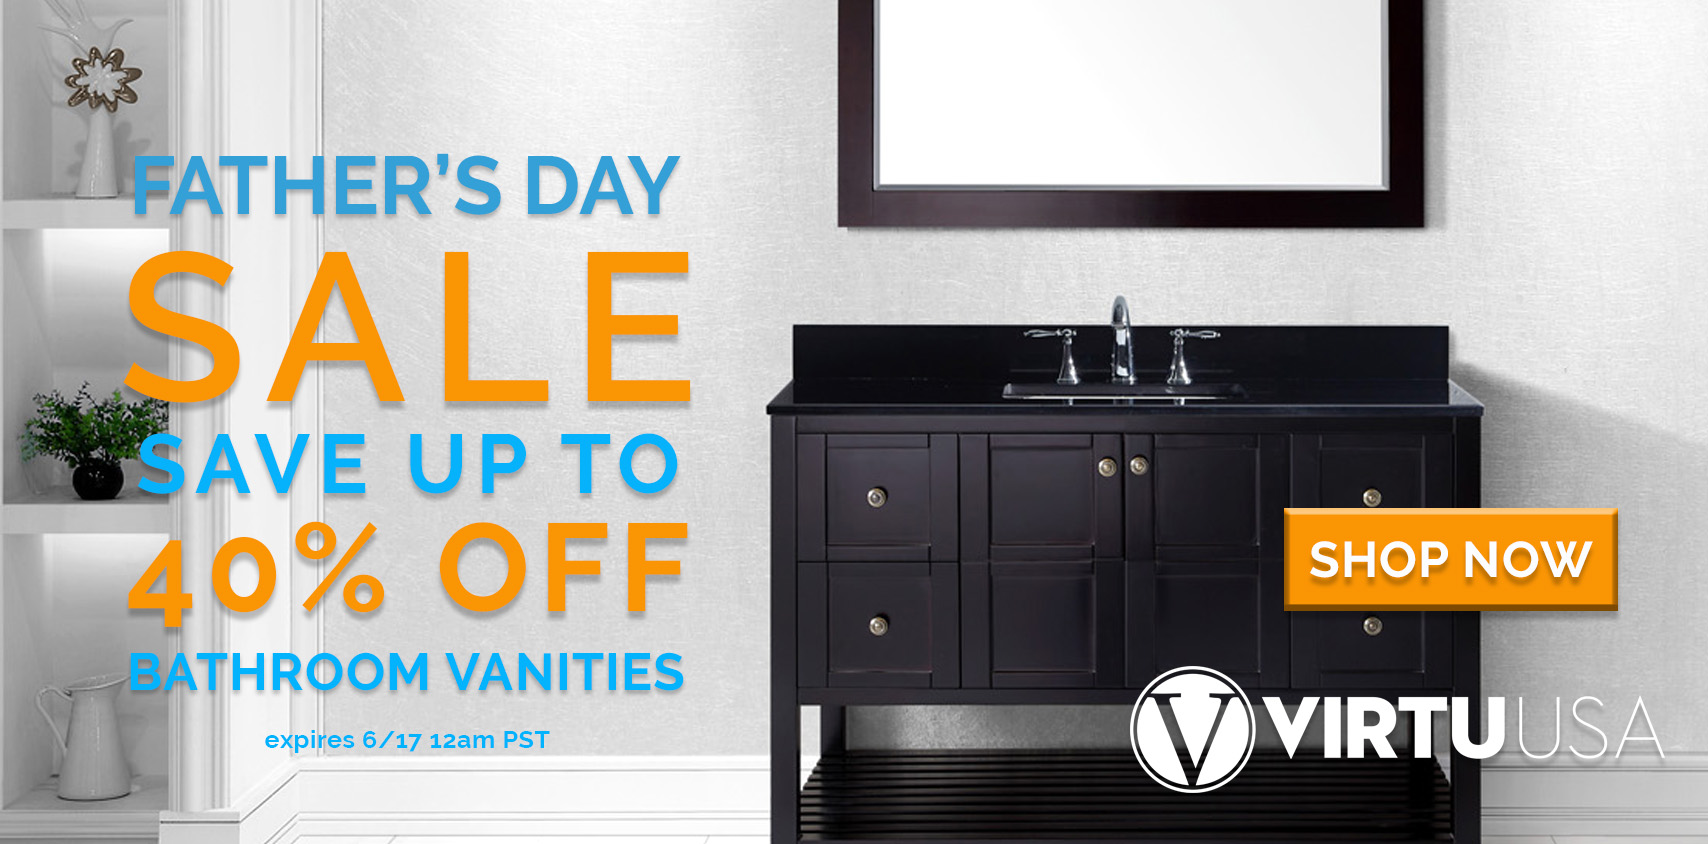 40% off Bathroom Vanities